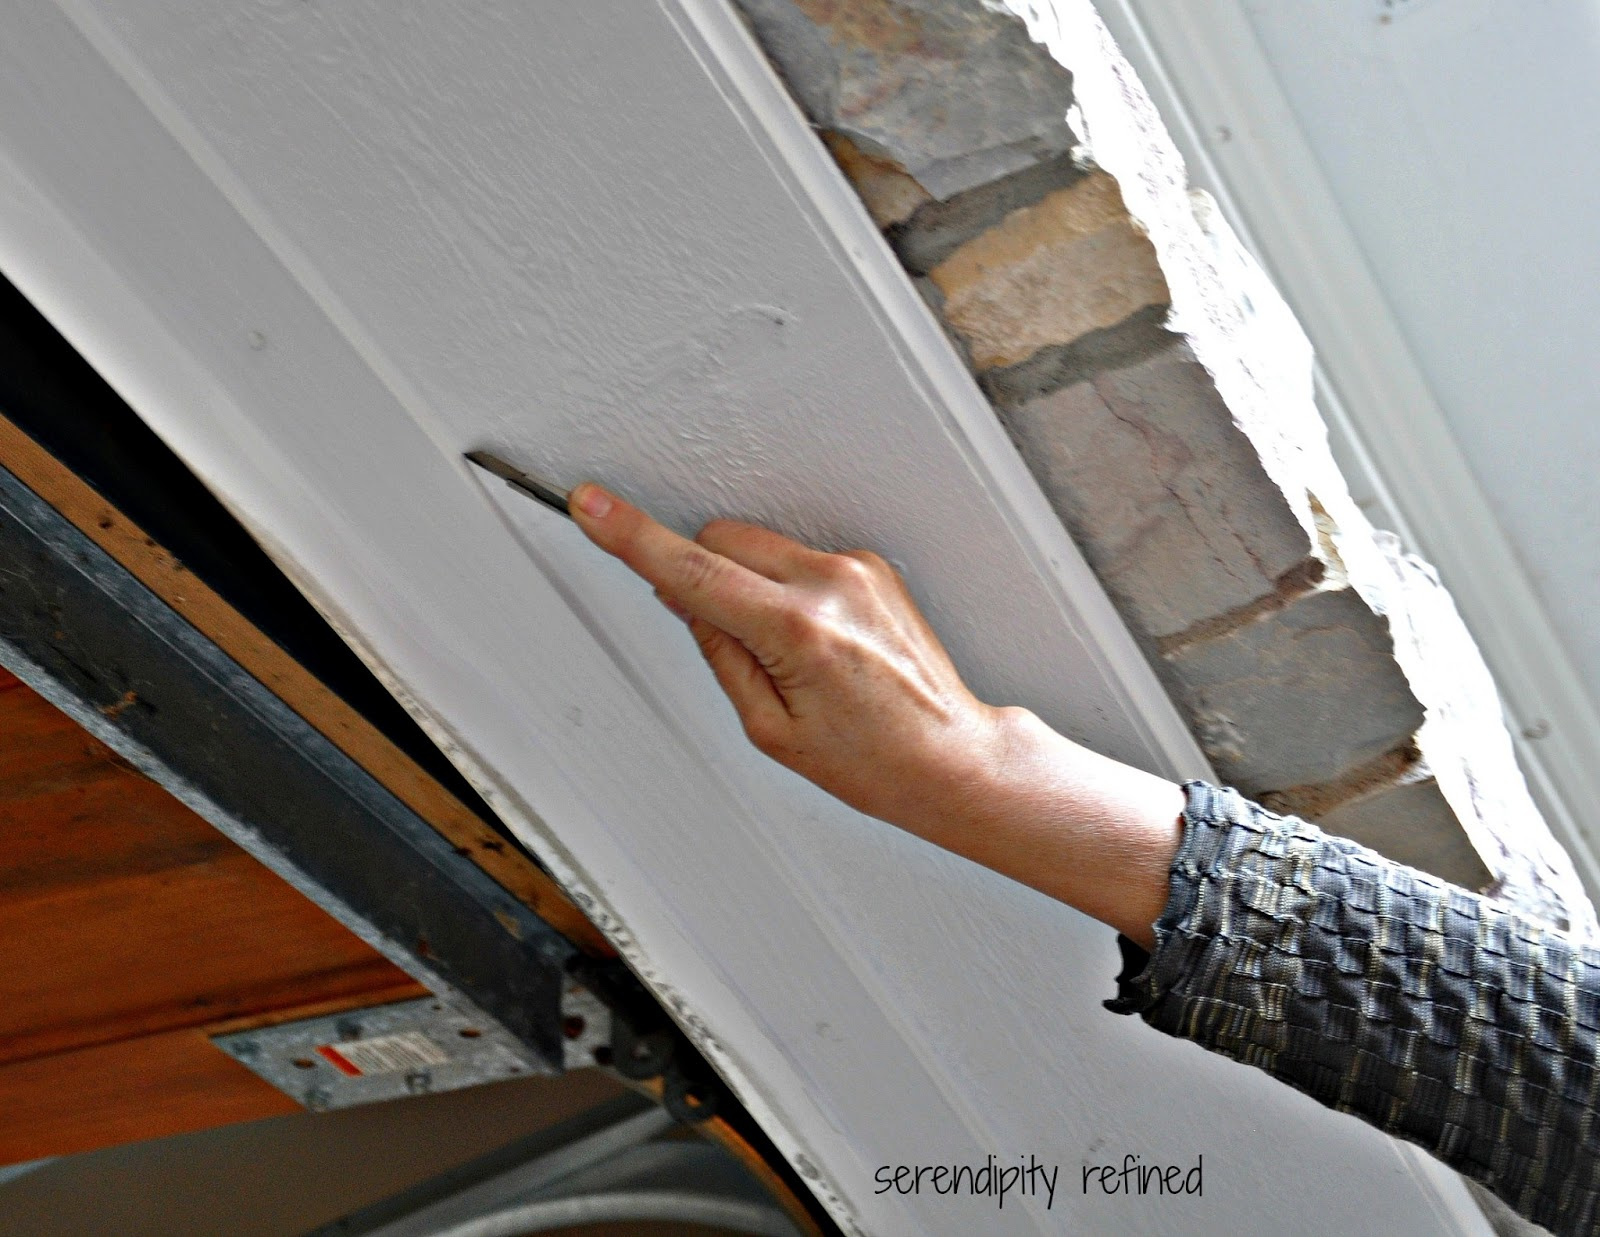 DIY Home Maintenance Garage Door Weather Seal Replacement Fix & Serendipity Refined Blog: How To Replace A Garage Door Weather Seal